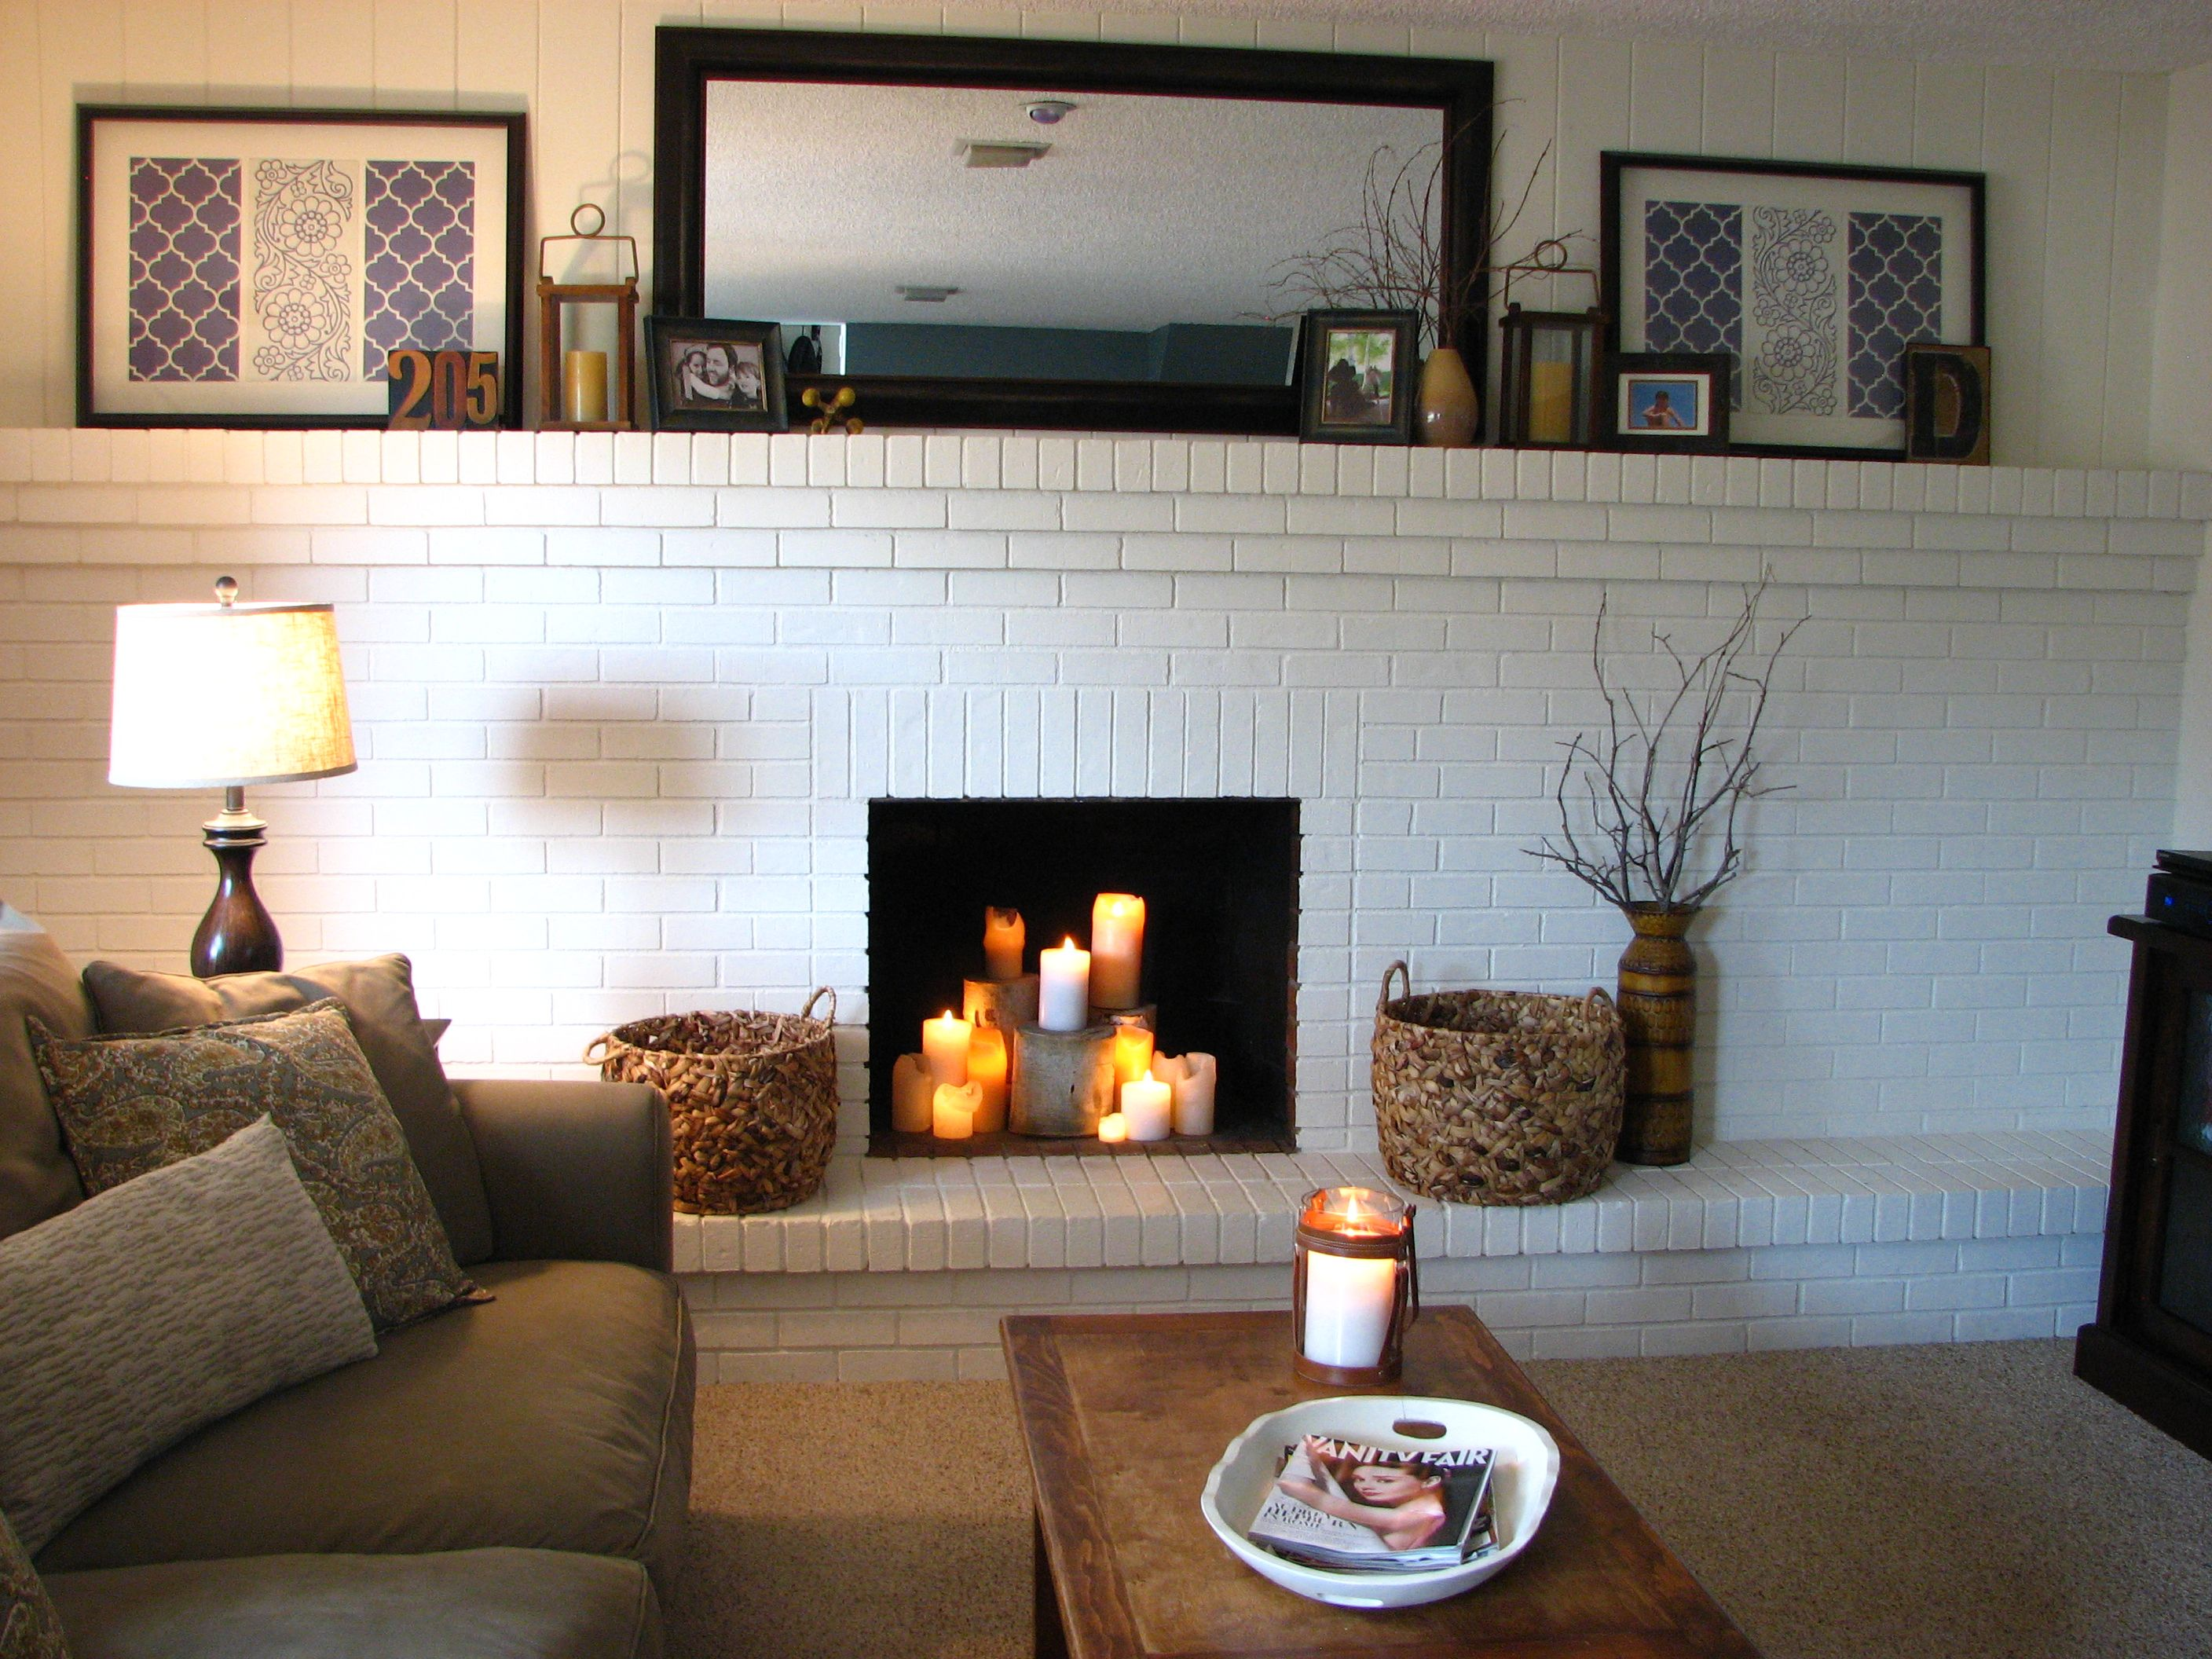 Fireplace Walls Ideas Adorable Best 25 Brick Fireplace Wall Ideas On Pinterest  Brick Fireplace Design Inspiration